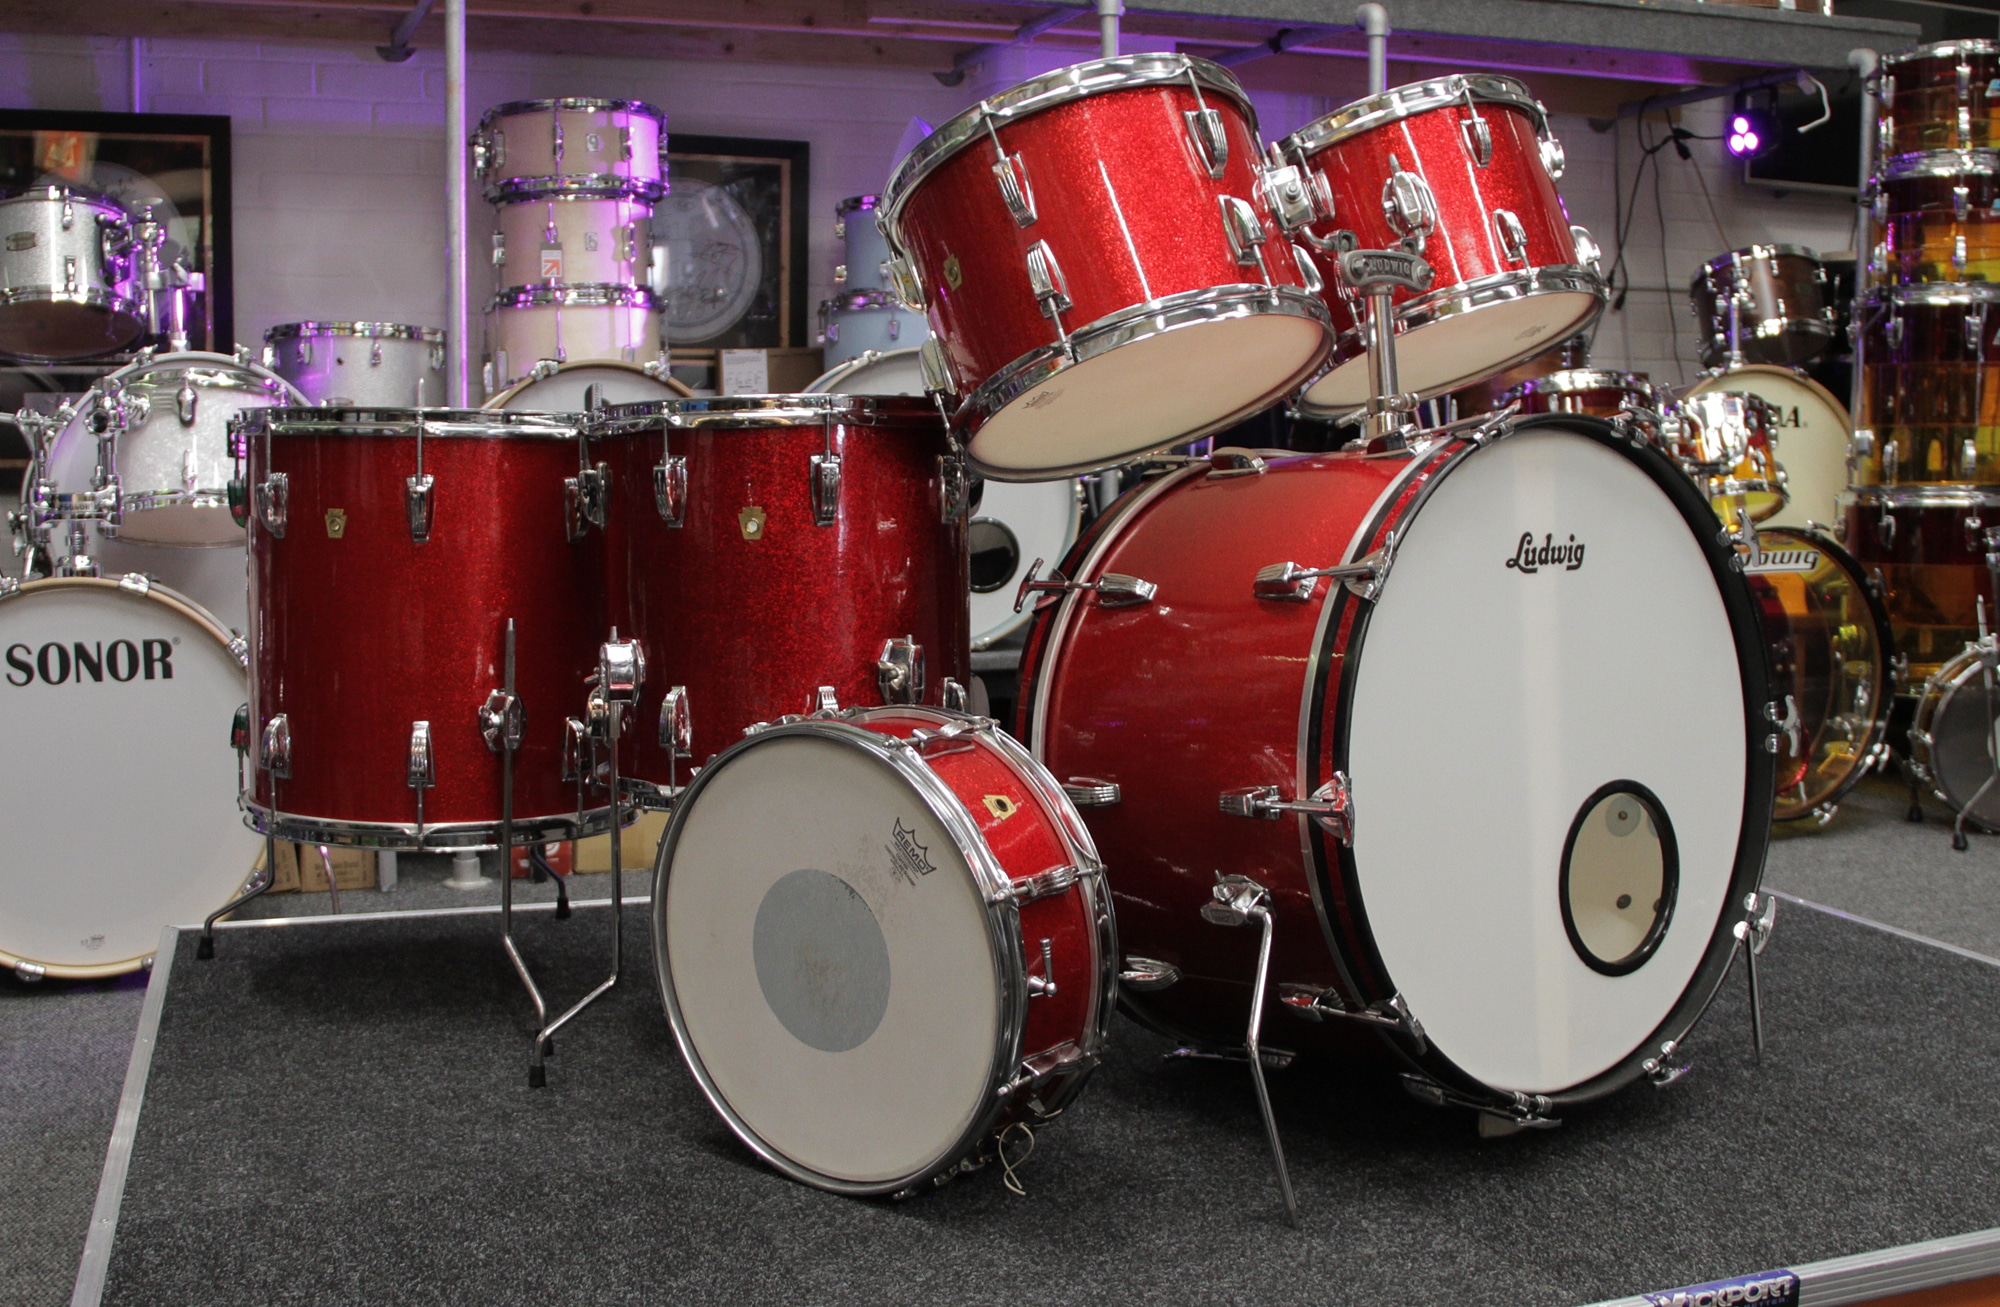 Best Drum Sets for Kids Reviewed in Detail